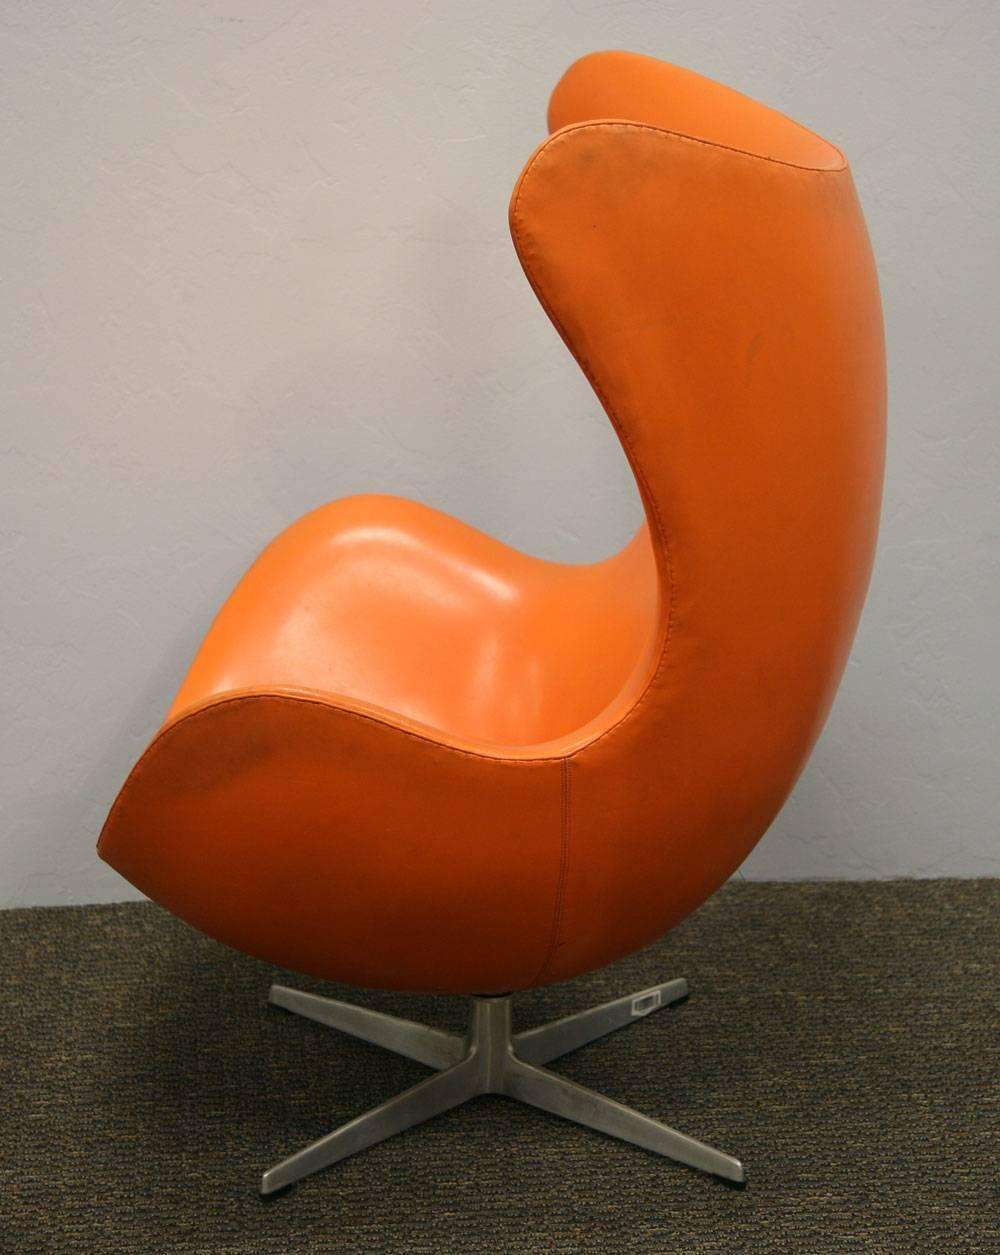 Arne Jacobsen Orange Egg Chair And Ottoman For Sale At 1stdibs